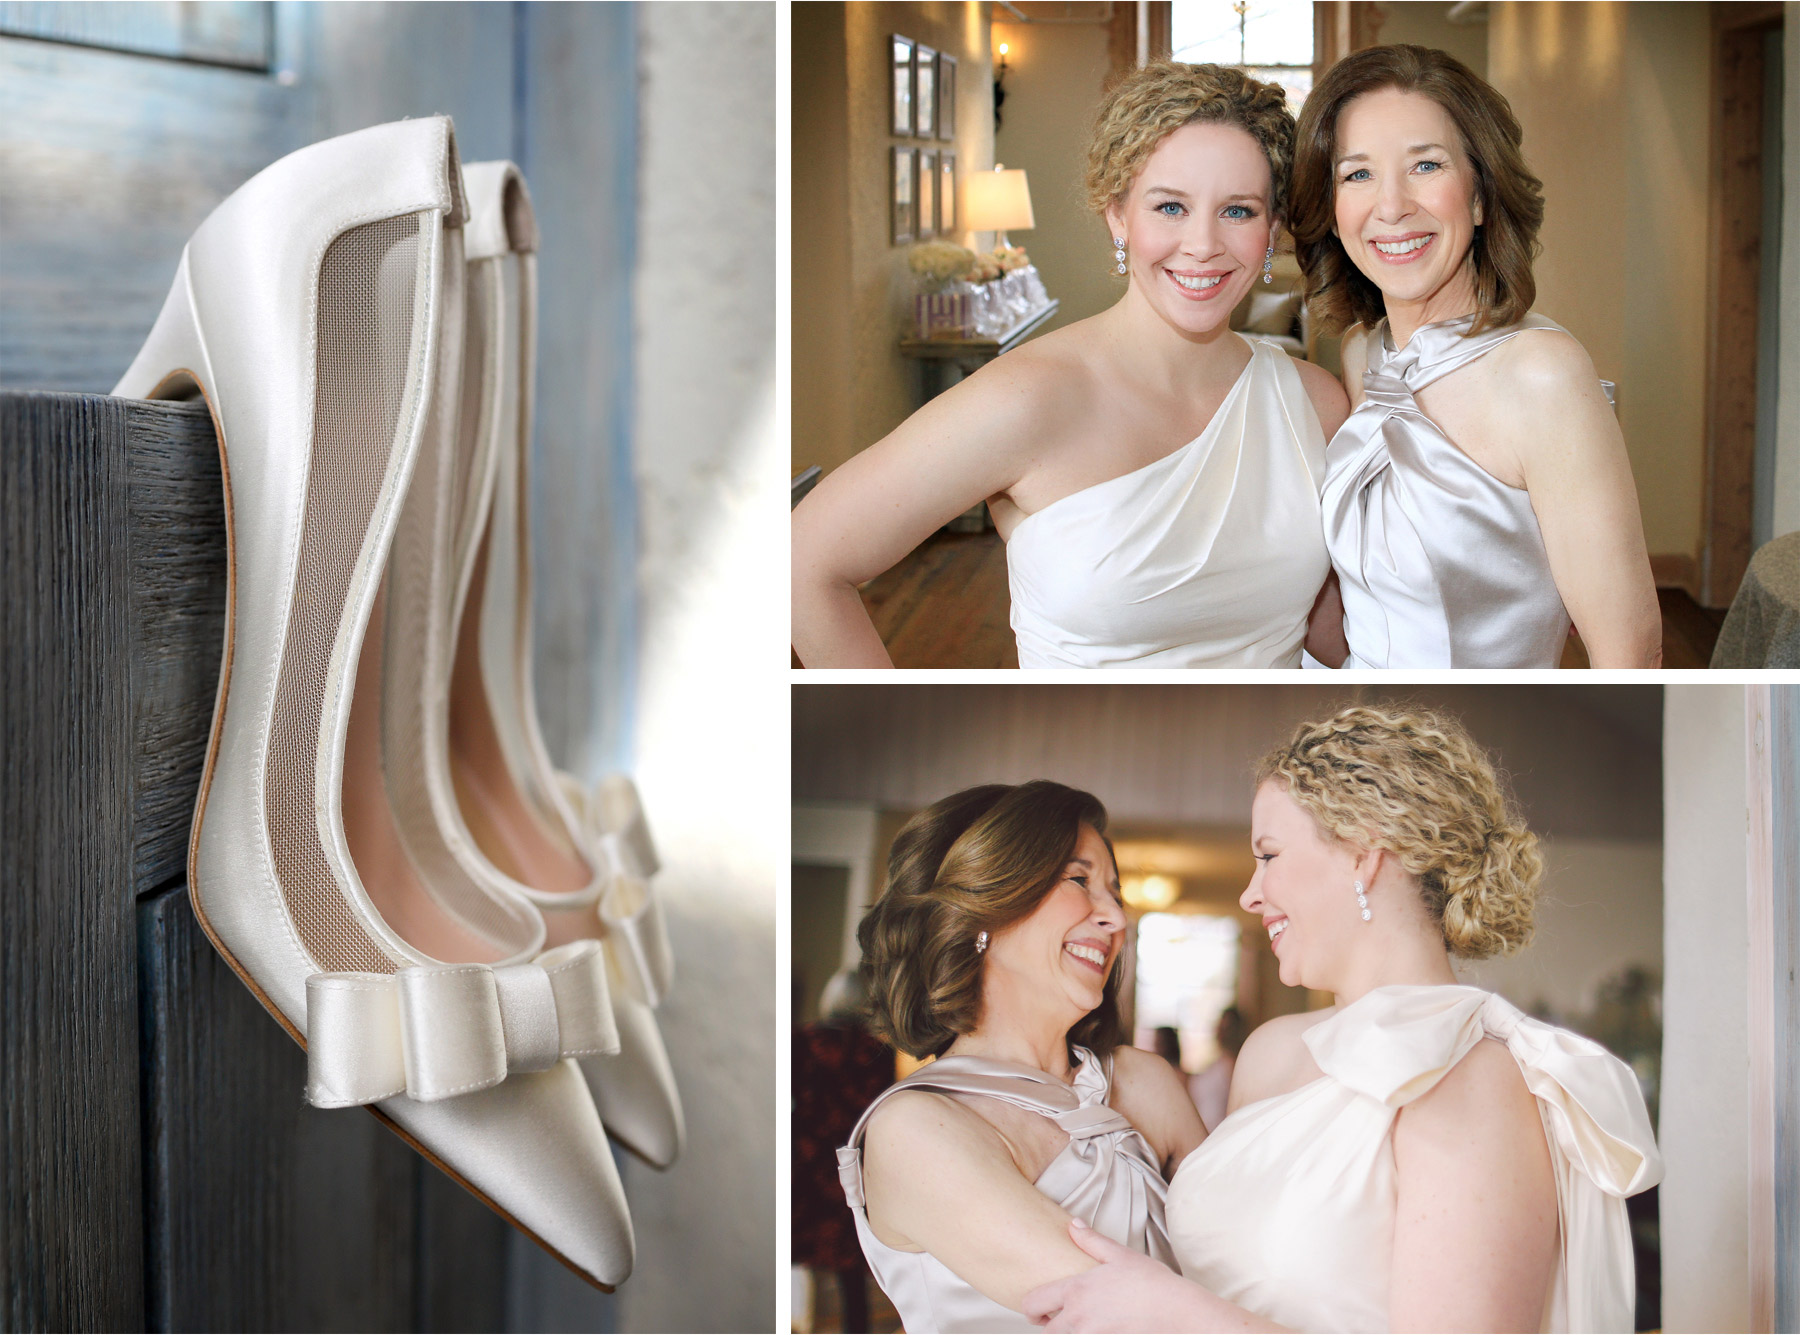 02-Minneapolis-Minnesota-Wedding-Photography-by-Vick-Photography-Bavaria-Downs-Shoes-Mother-of-the-Bride-Jill-and-David.jpg